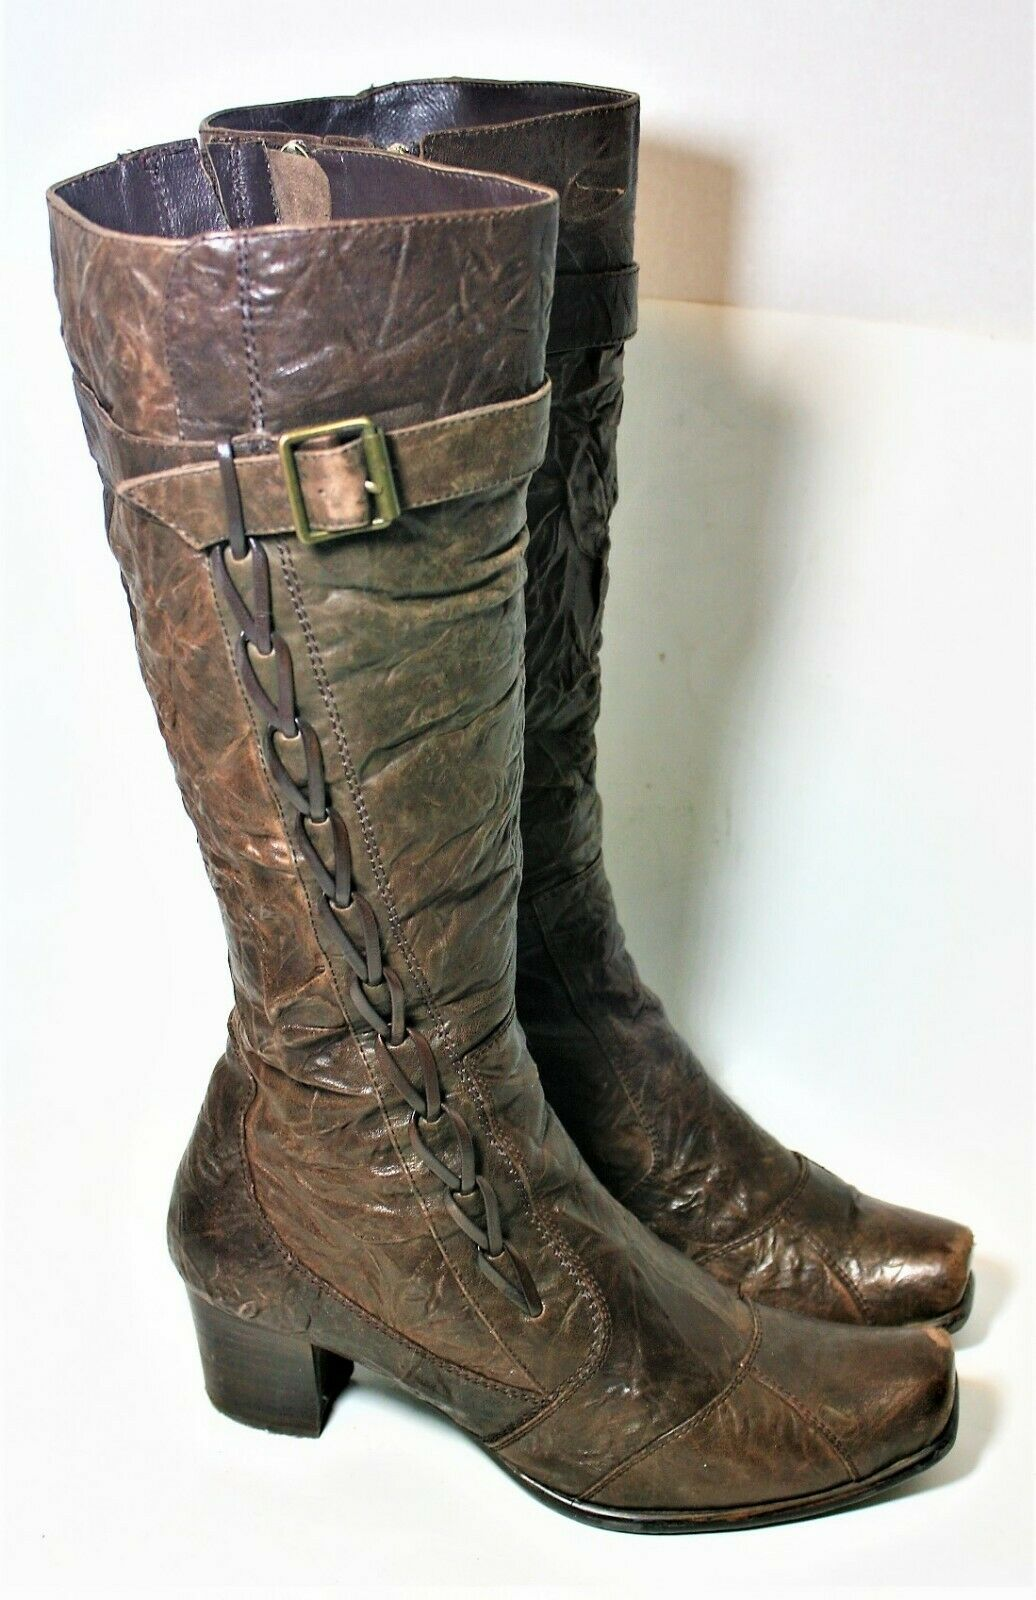 MASCOTTE SHOES CRINKLED BROWN LEATHER FAUX FUR LINED BOOTS 38 KNEE HIGH